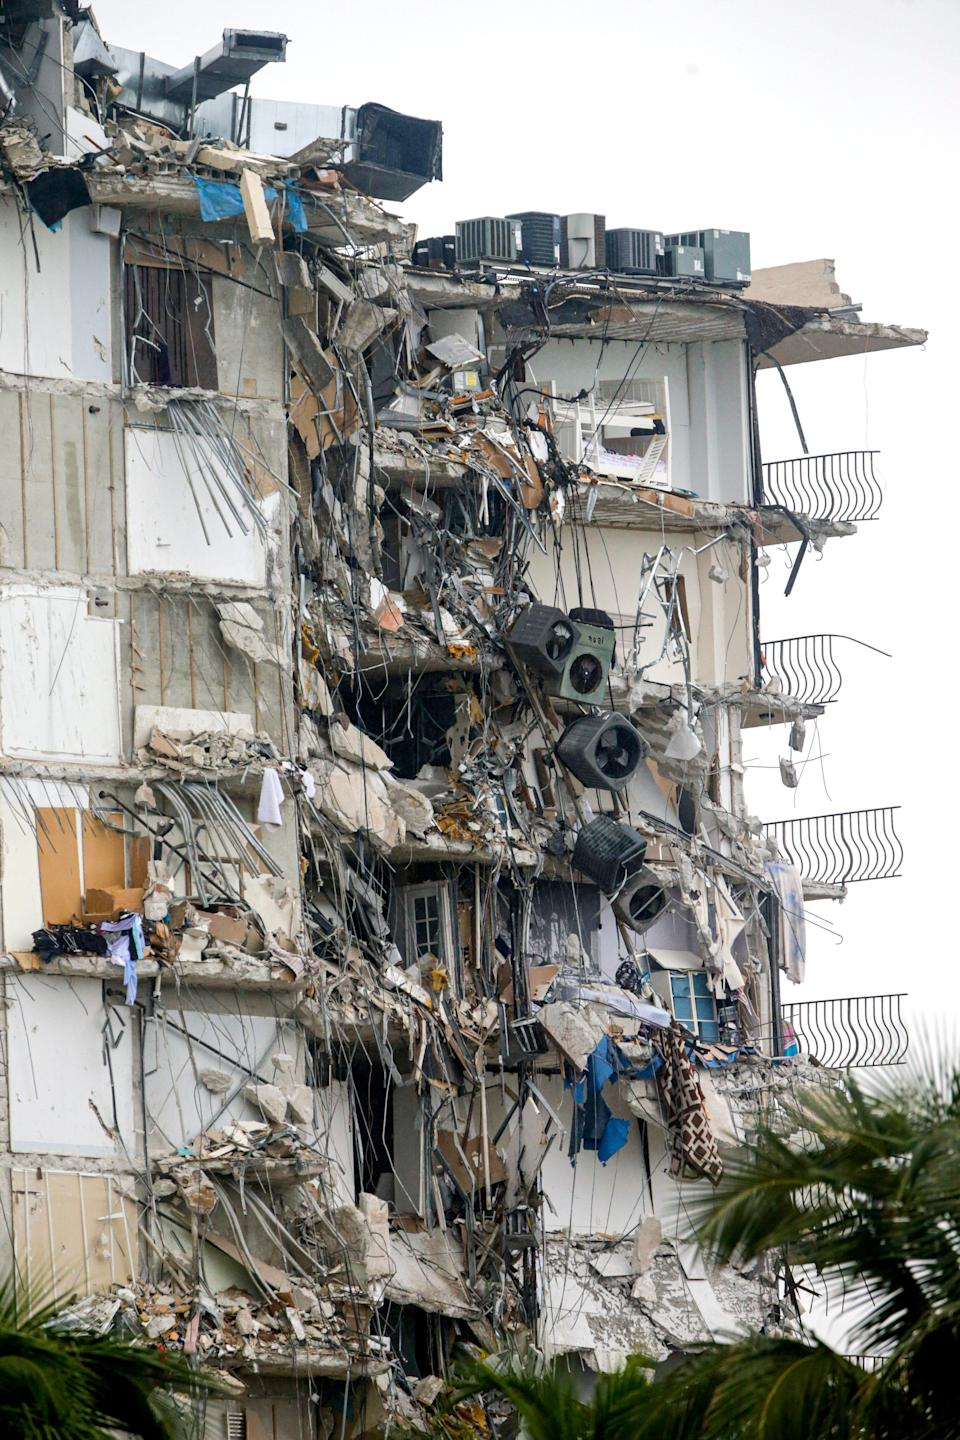 The 12-story condominium that partially collapsed early June 24 in Surfside, Fla.